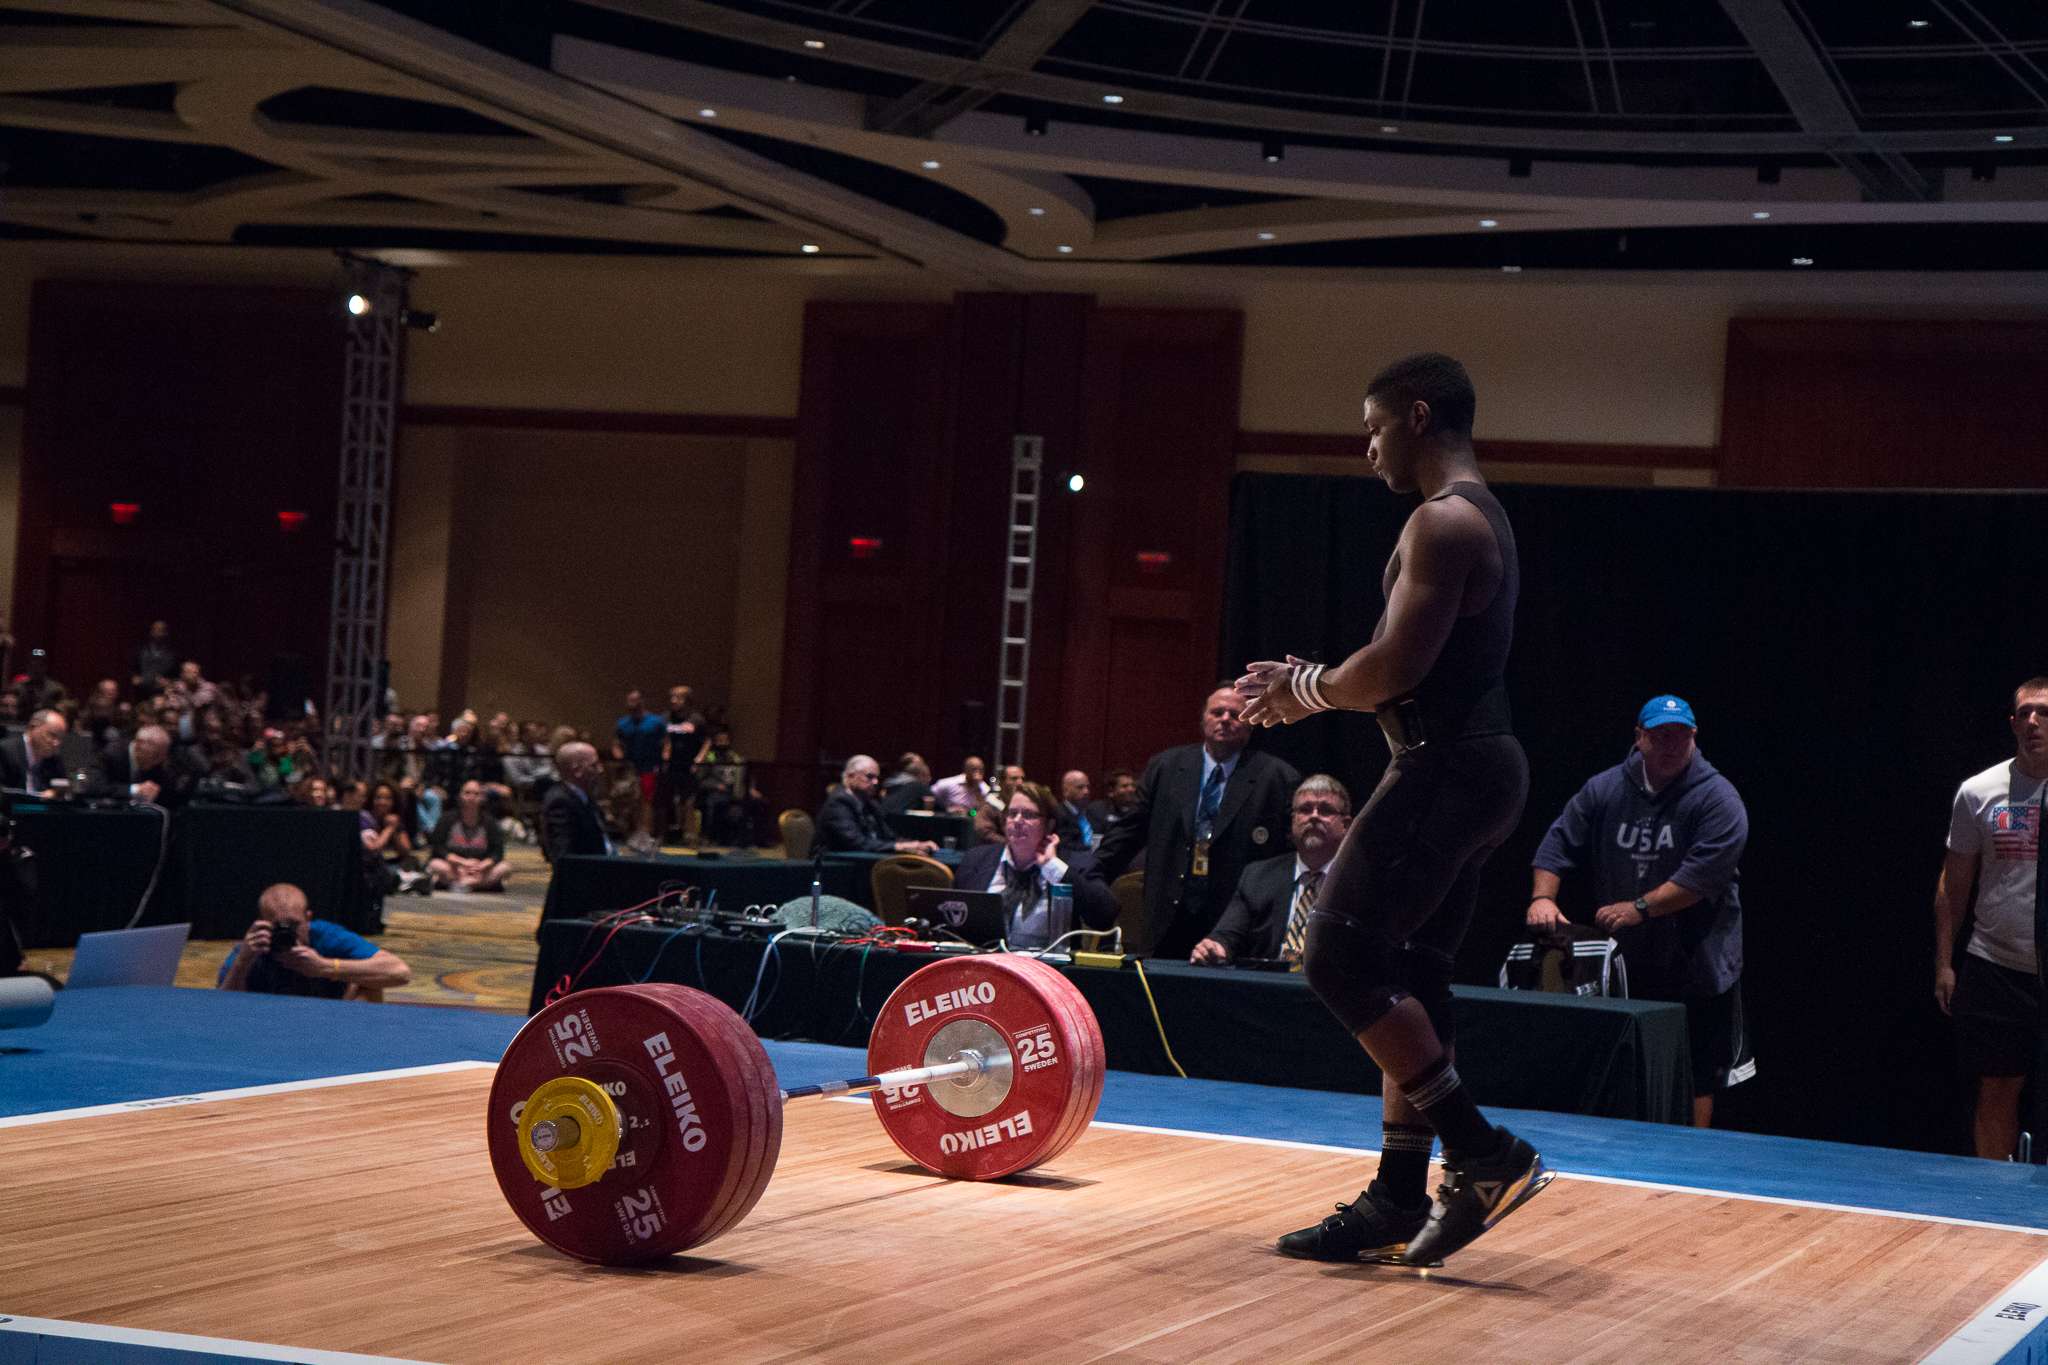 session-a-favorites-american-open-2016-weightlifting-photography (16 of 38).jpg